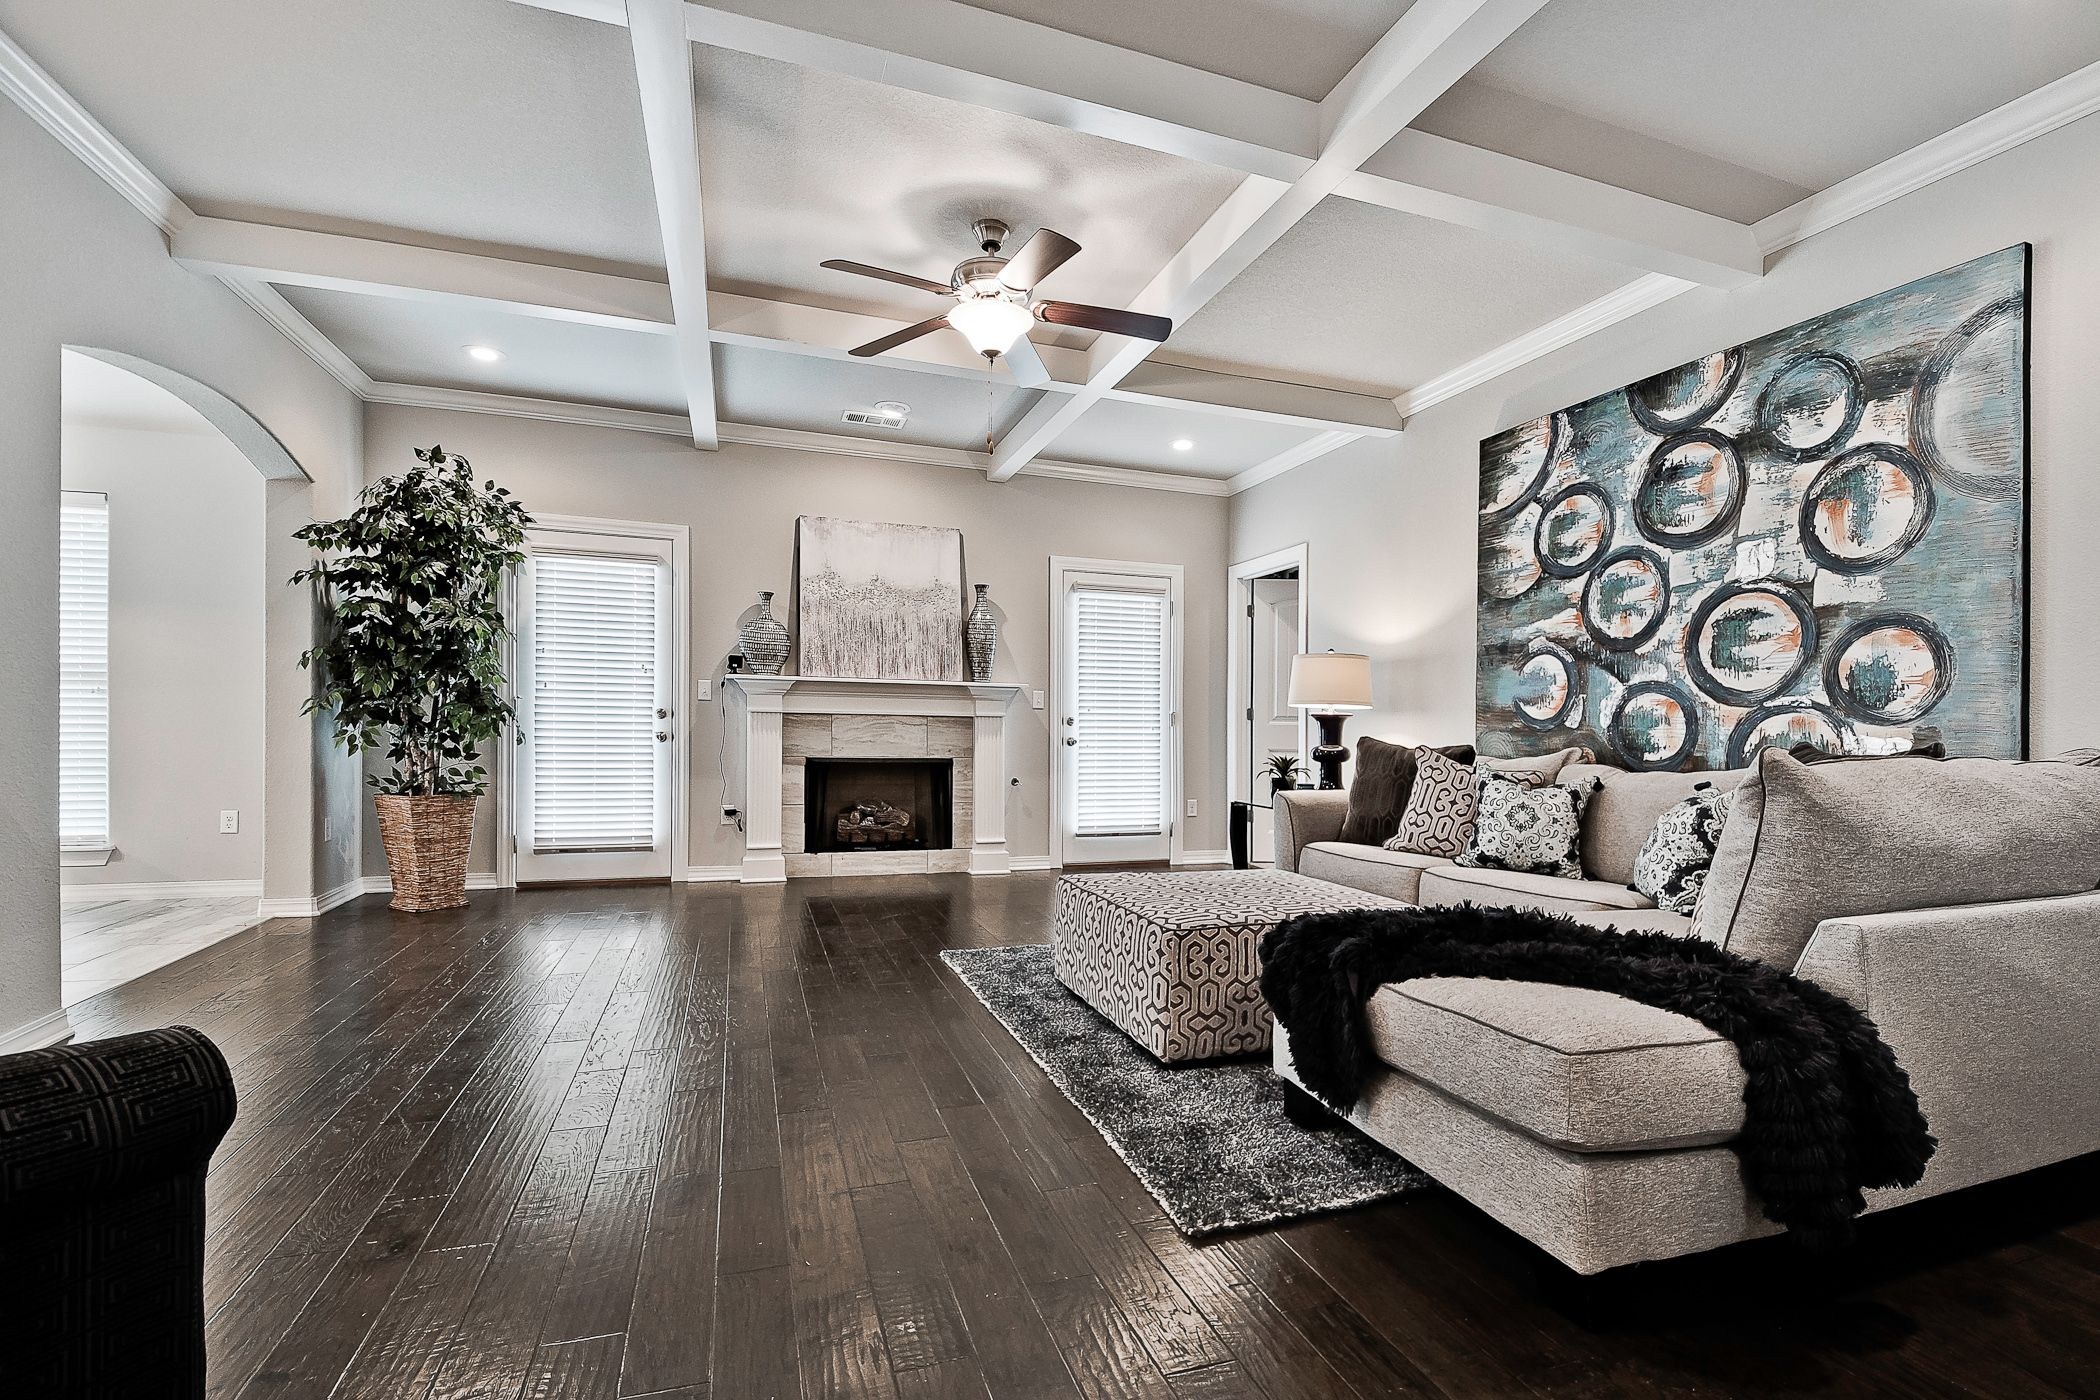 Living Area featured in the Maple 1659 By Riverwood Homes - Arkansas in Fayetteville, AR